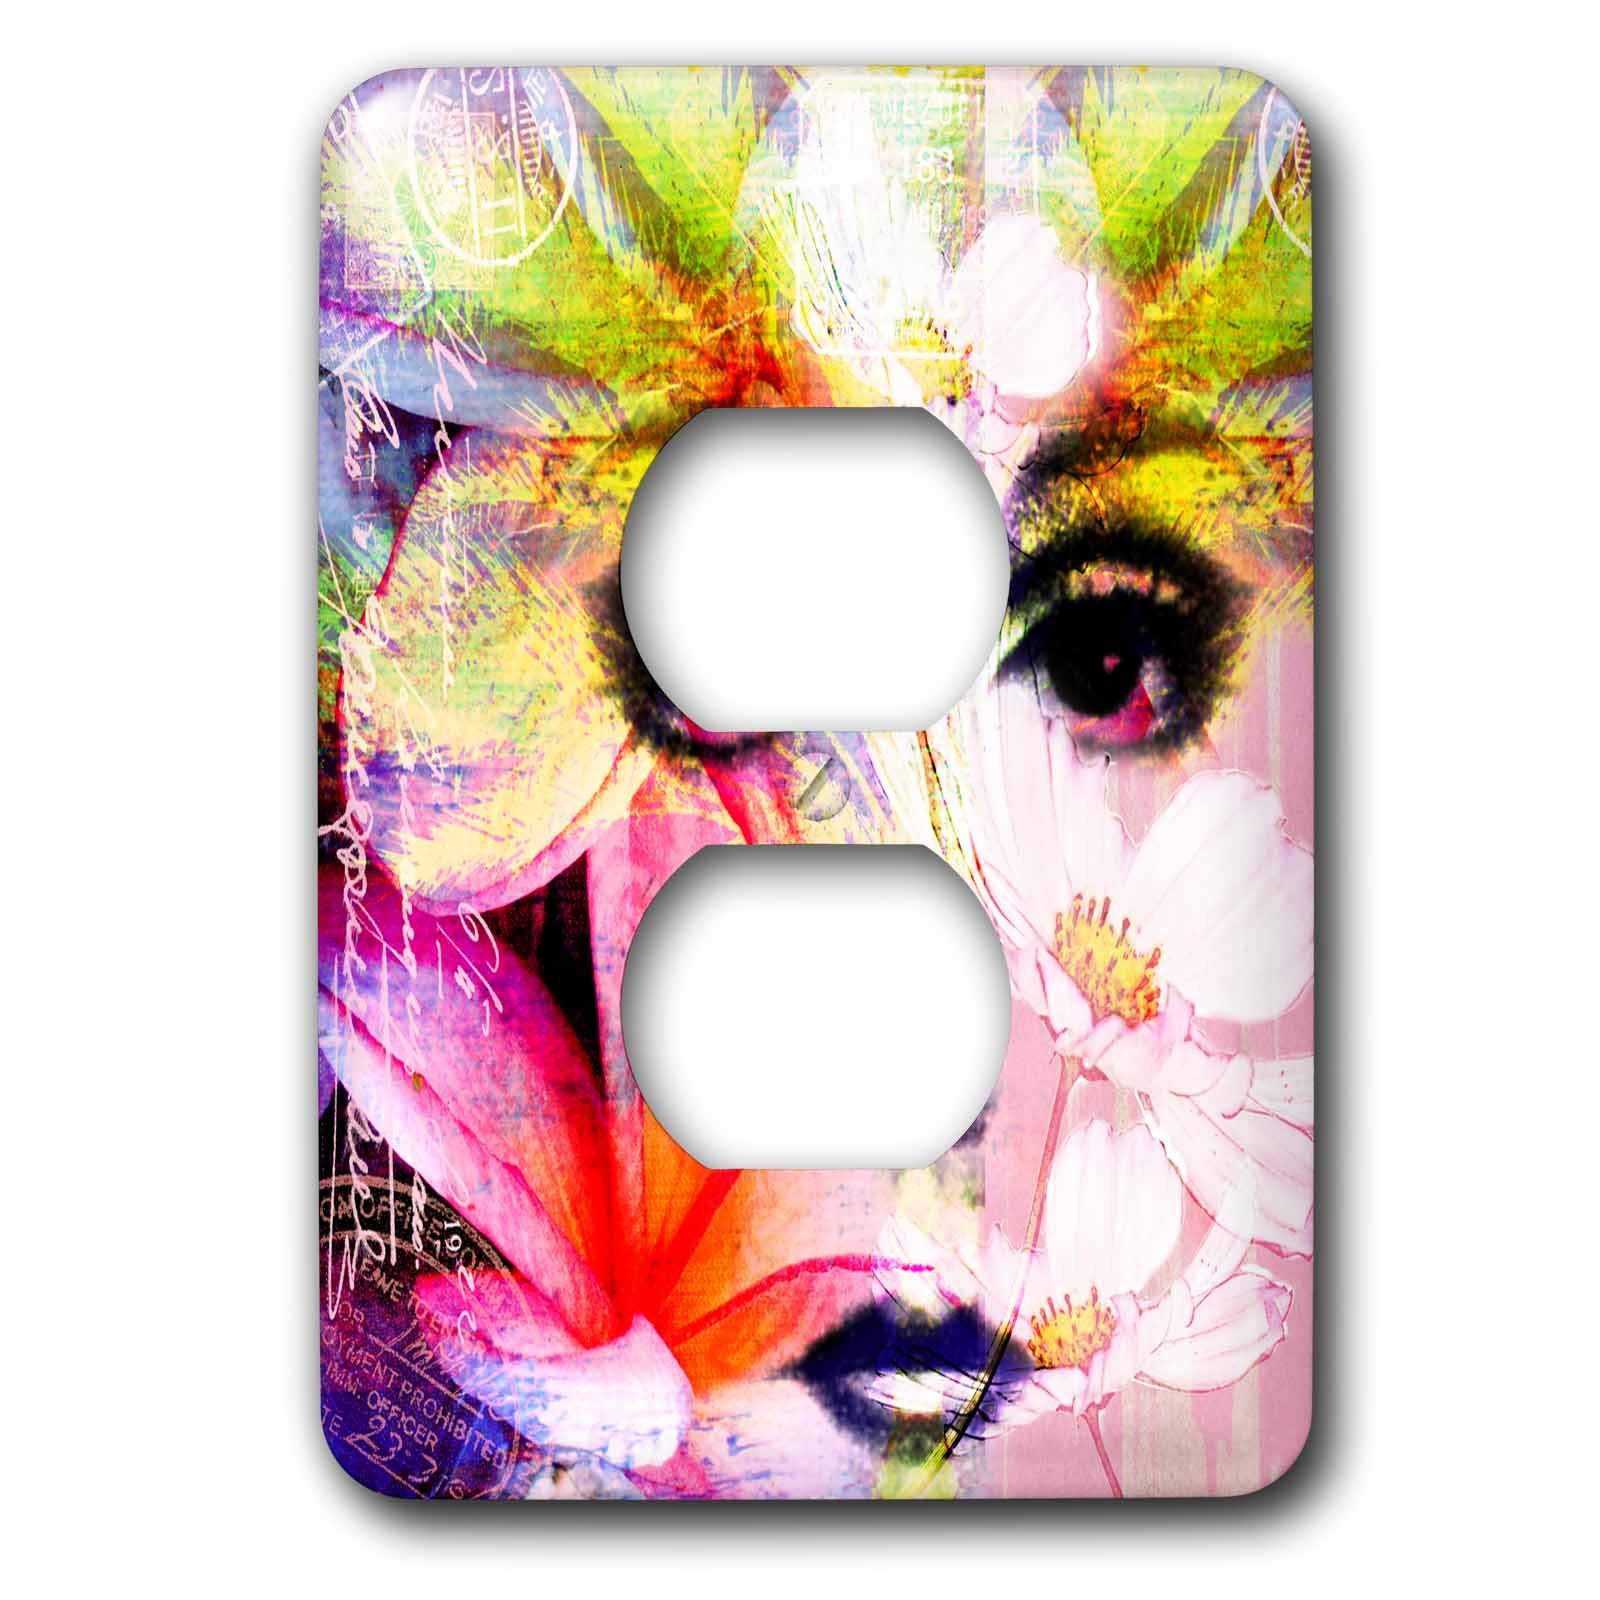 3dRose Andrea Haase Illustration Woman - Mixed media art woman face with floral elements - Light Switch Covers - 2 plug outlet cover (lsp_261653_6)